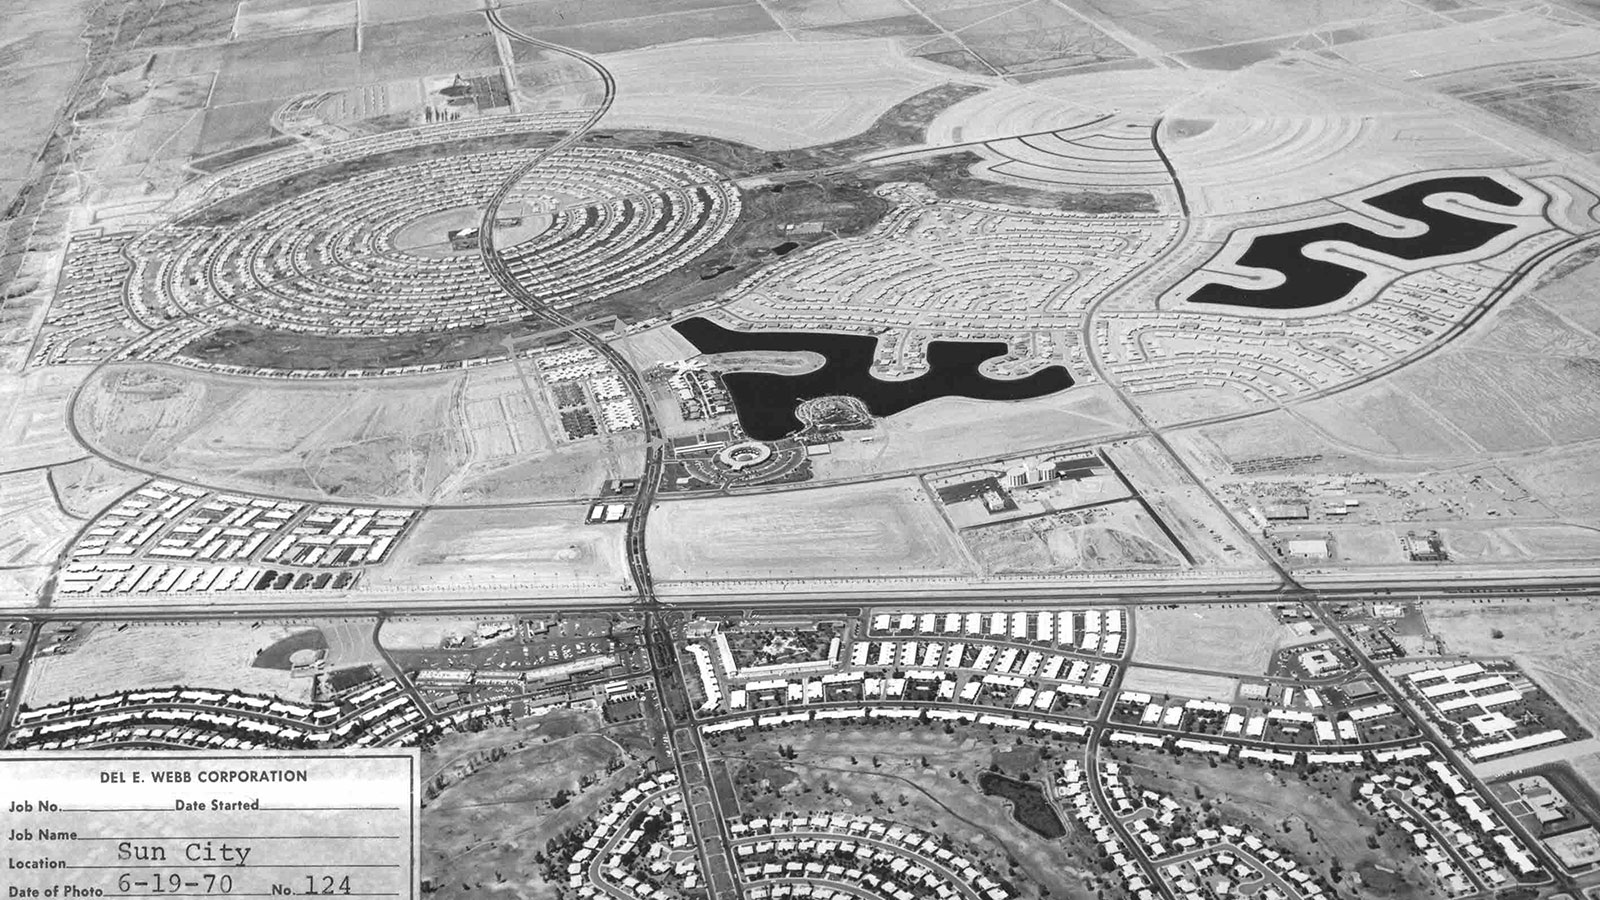 Sun city arizona wttw chicago public media television and sun citys distinctive layout was anchored by two circles of concentric streets making the village instantly identifiable from the air publicscrutiny Gallery